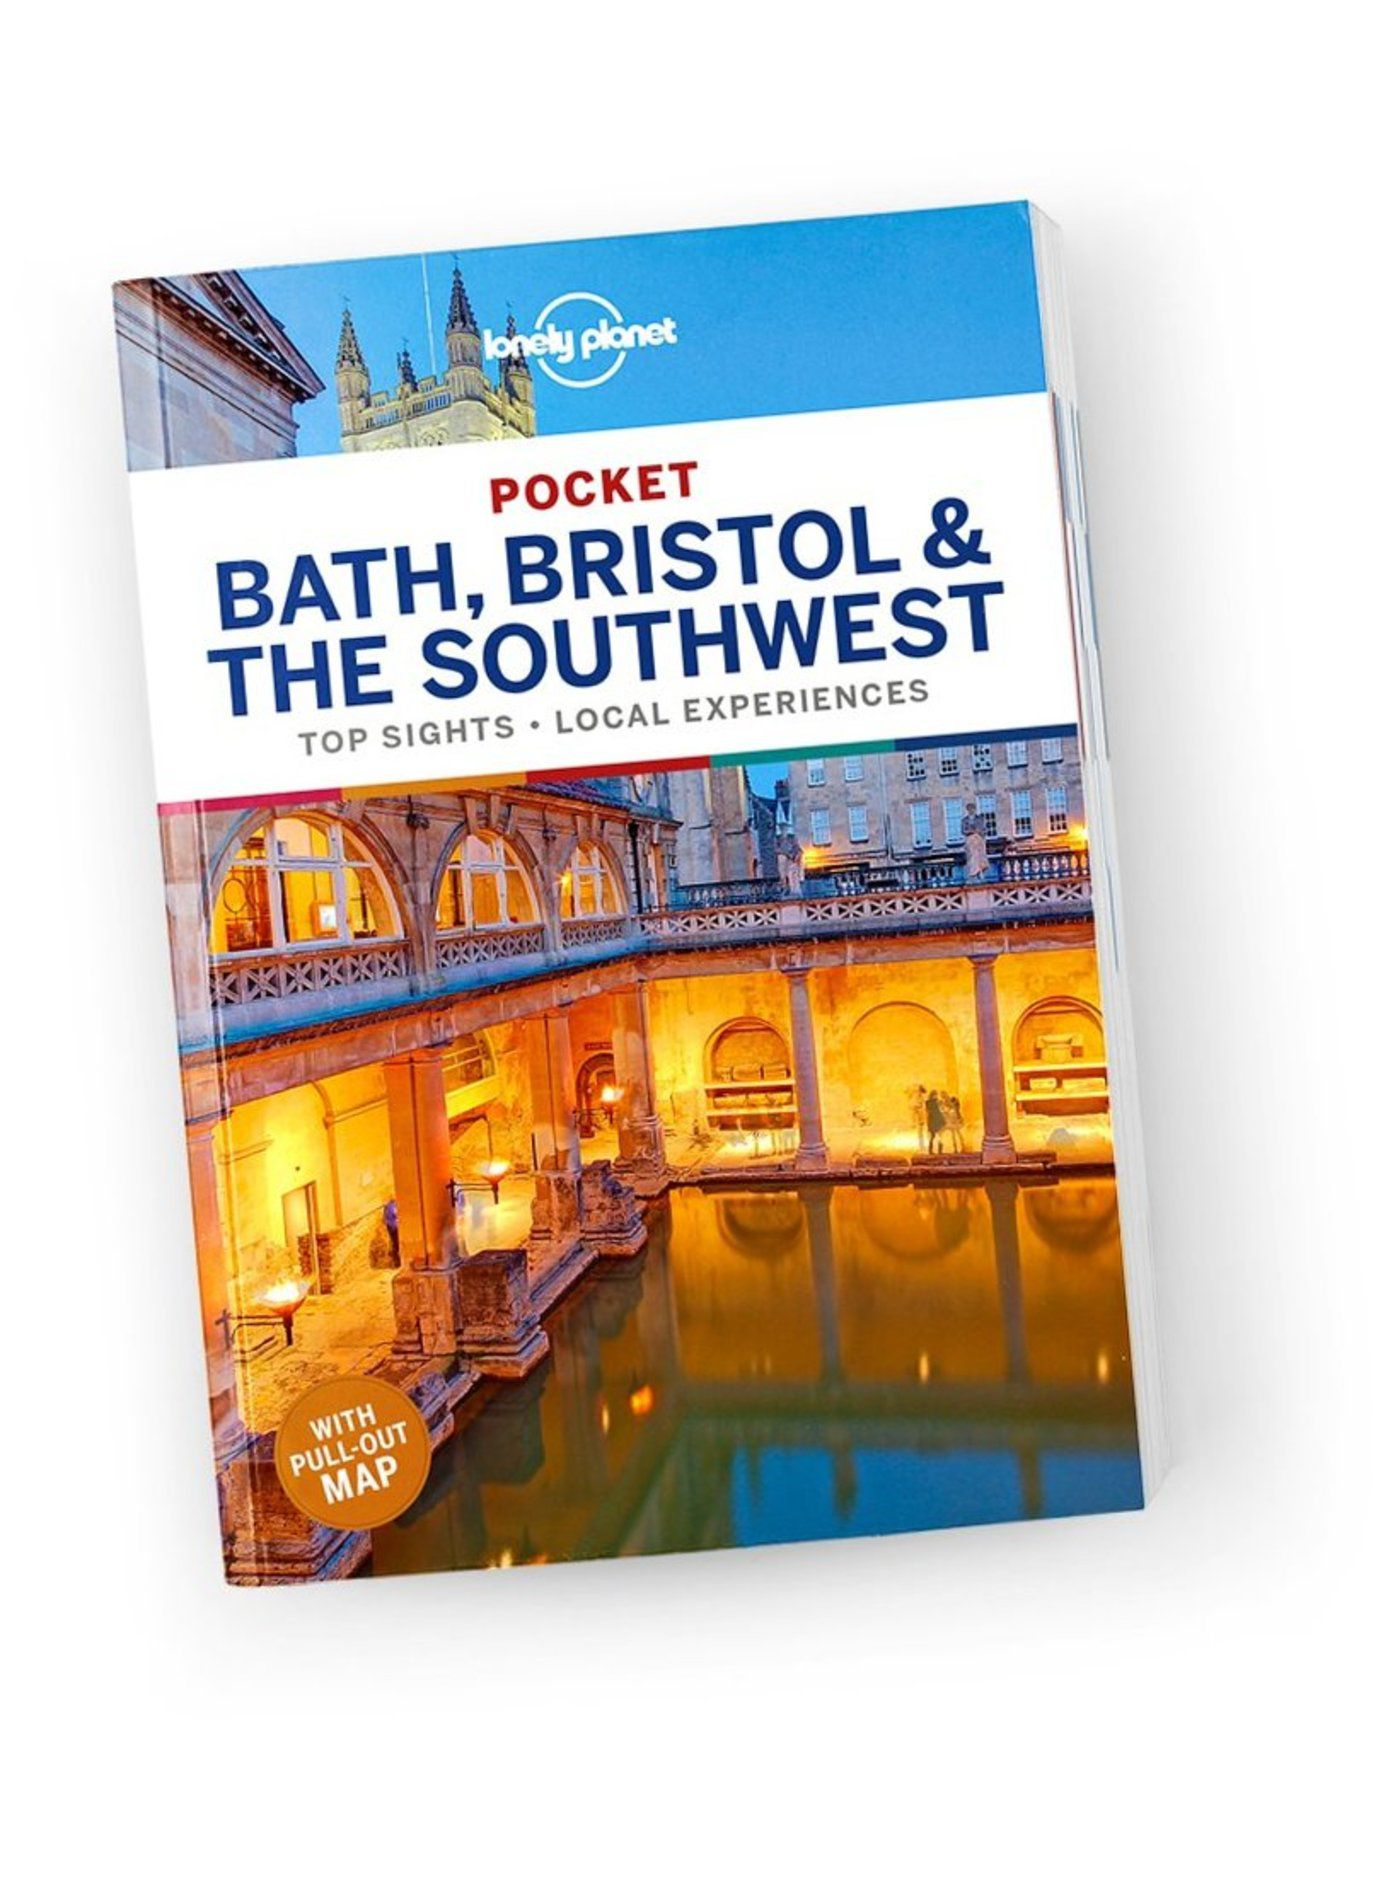 Pocket Bath, Bristol & the Southwest